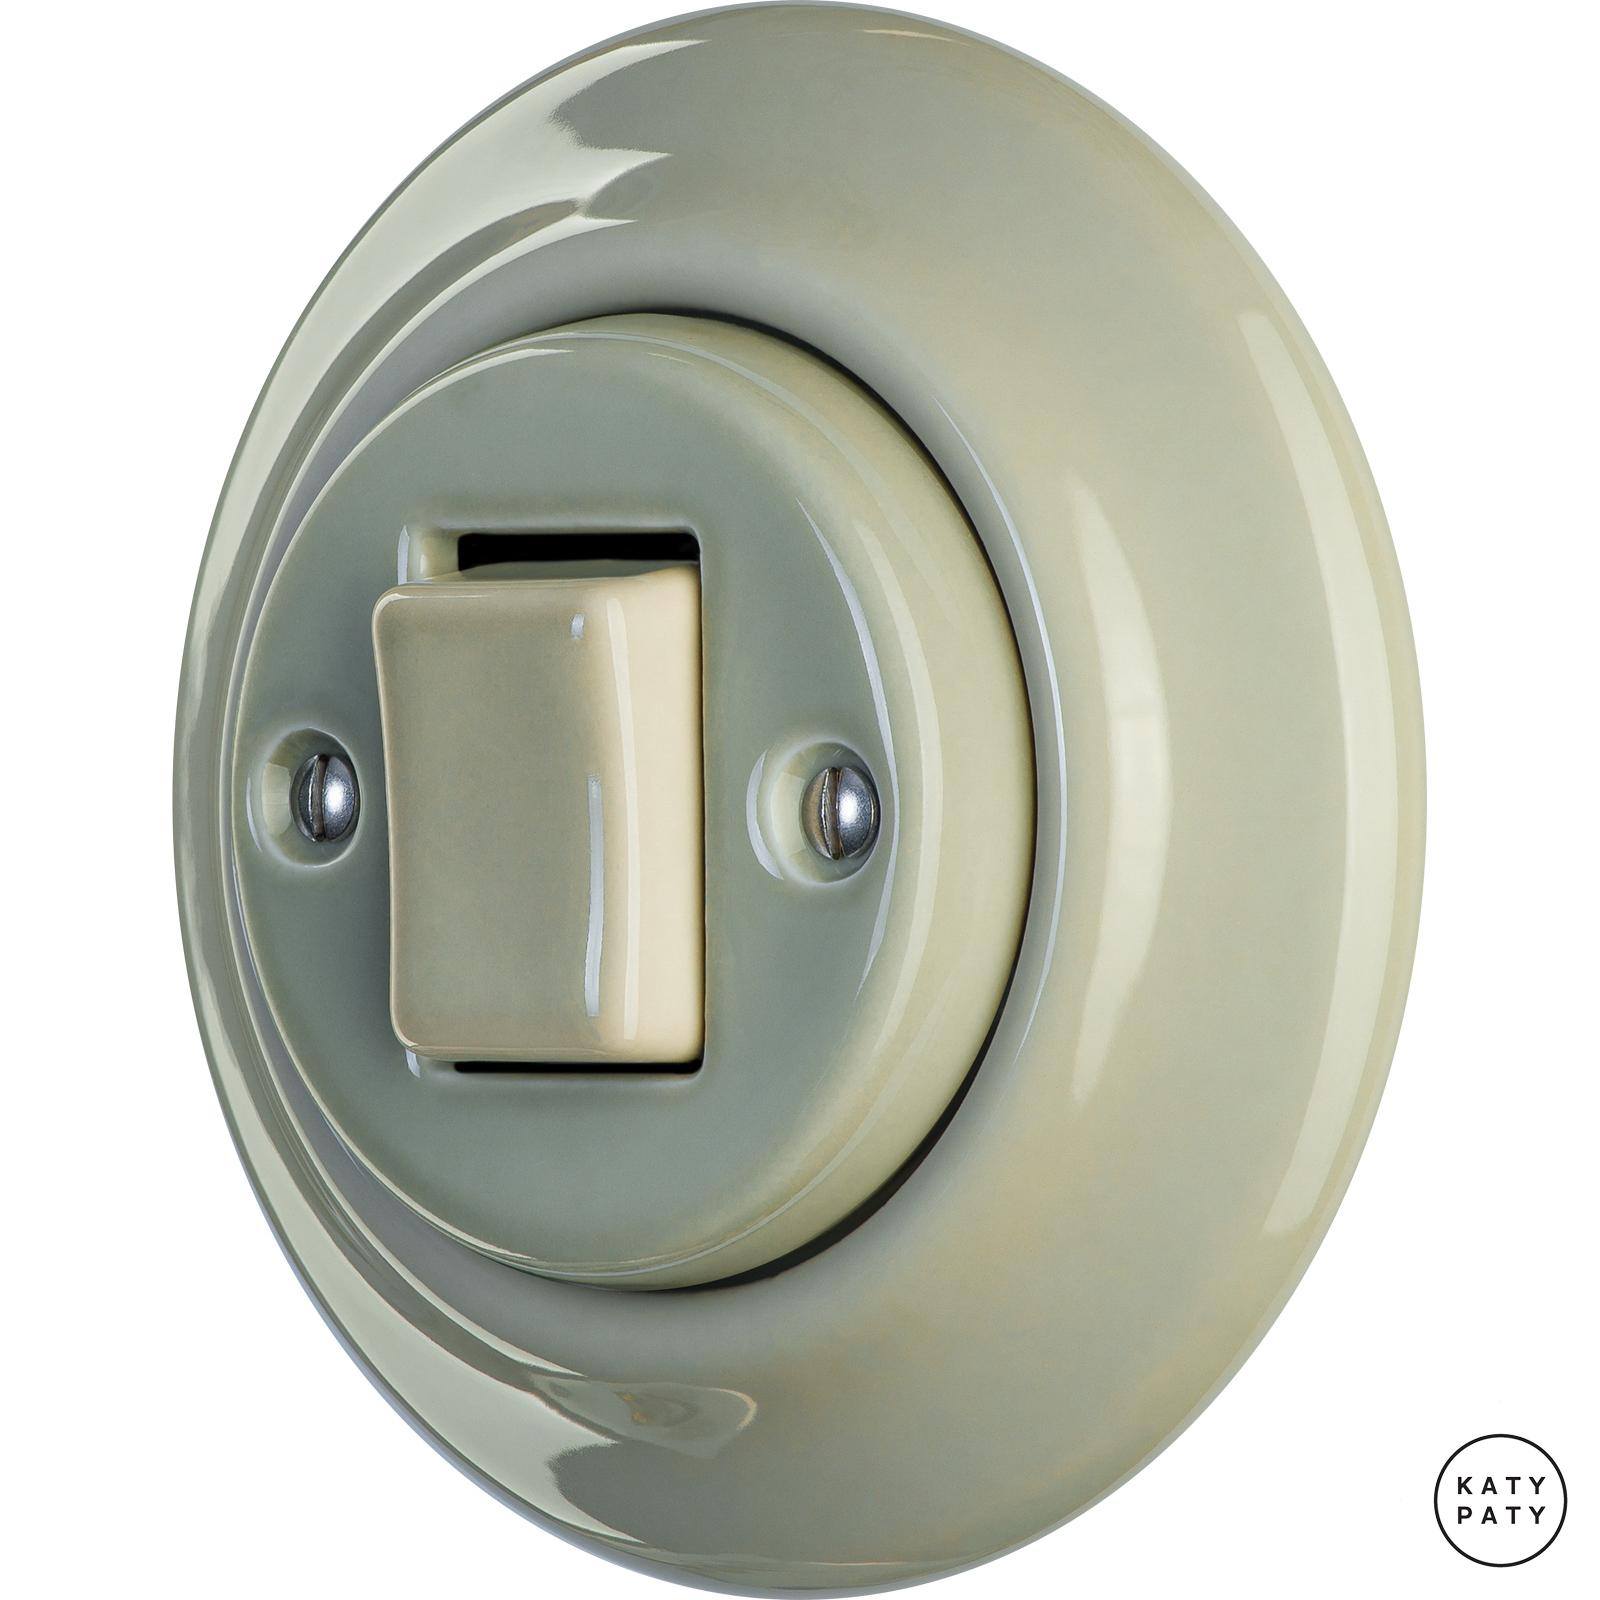 Porcelain switches - a single gang - FAT ()  - CHLORA | Katy Paty